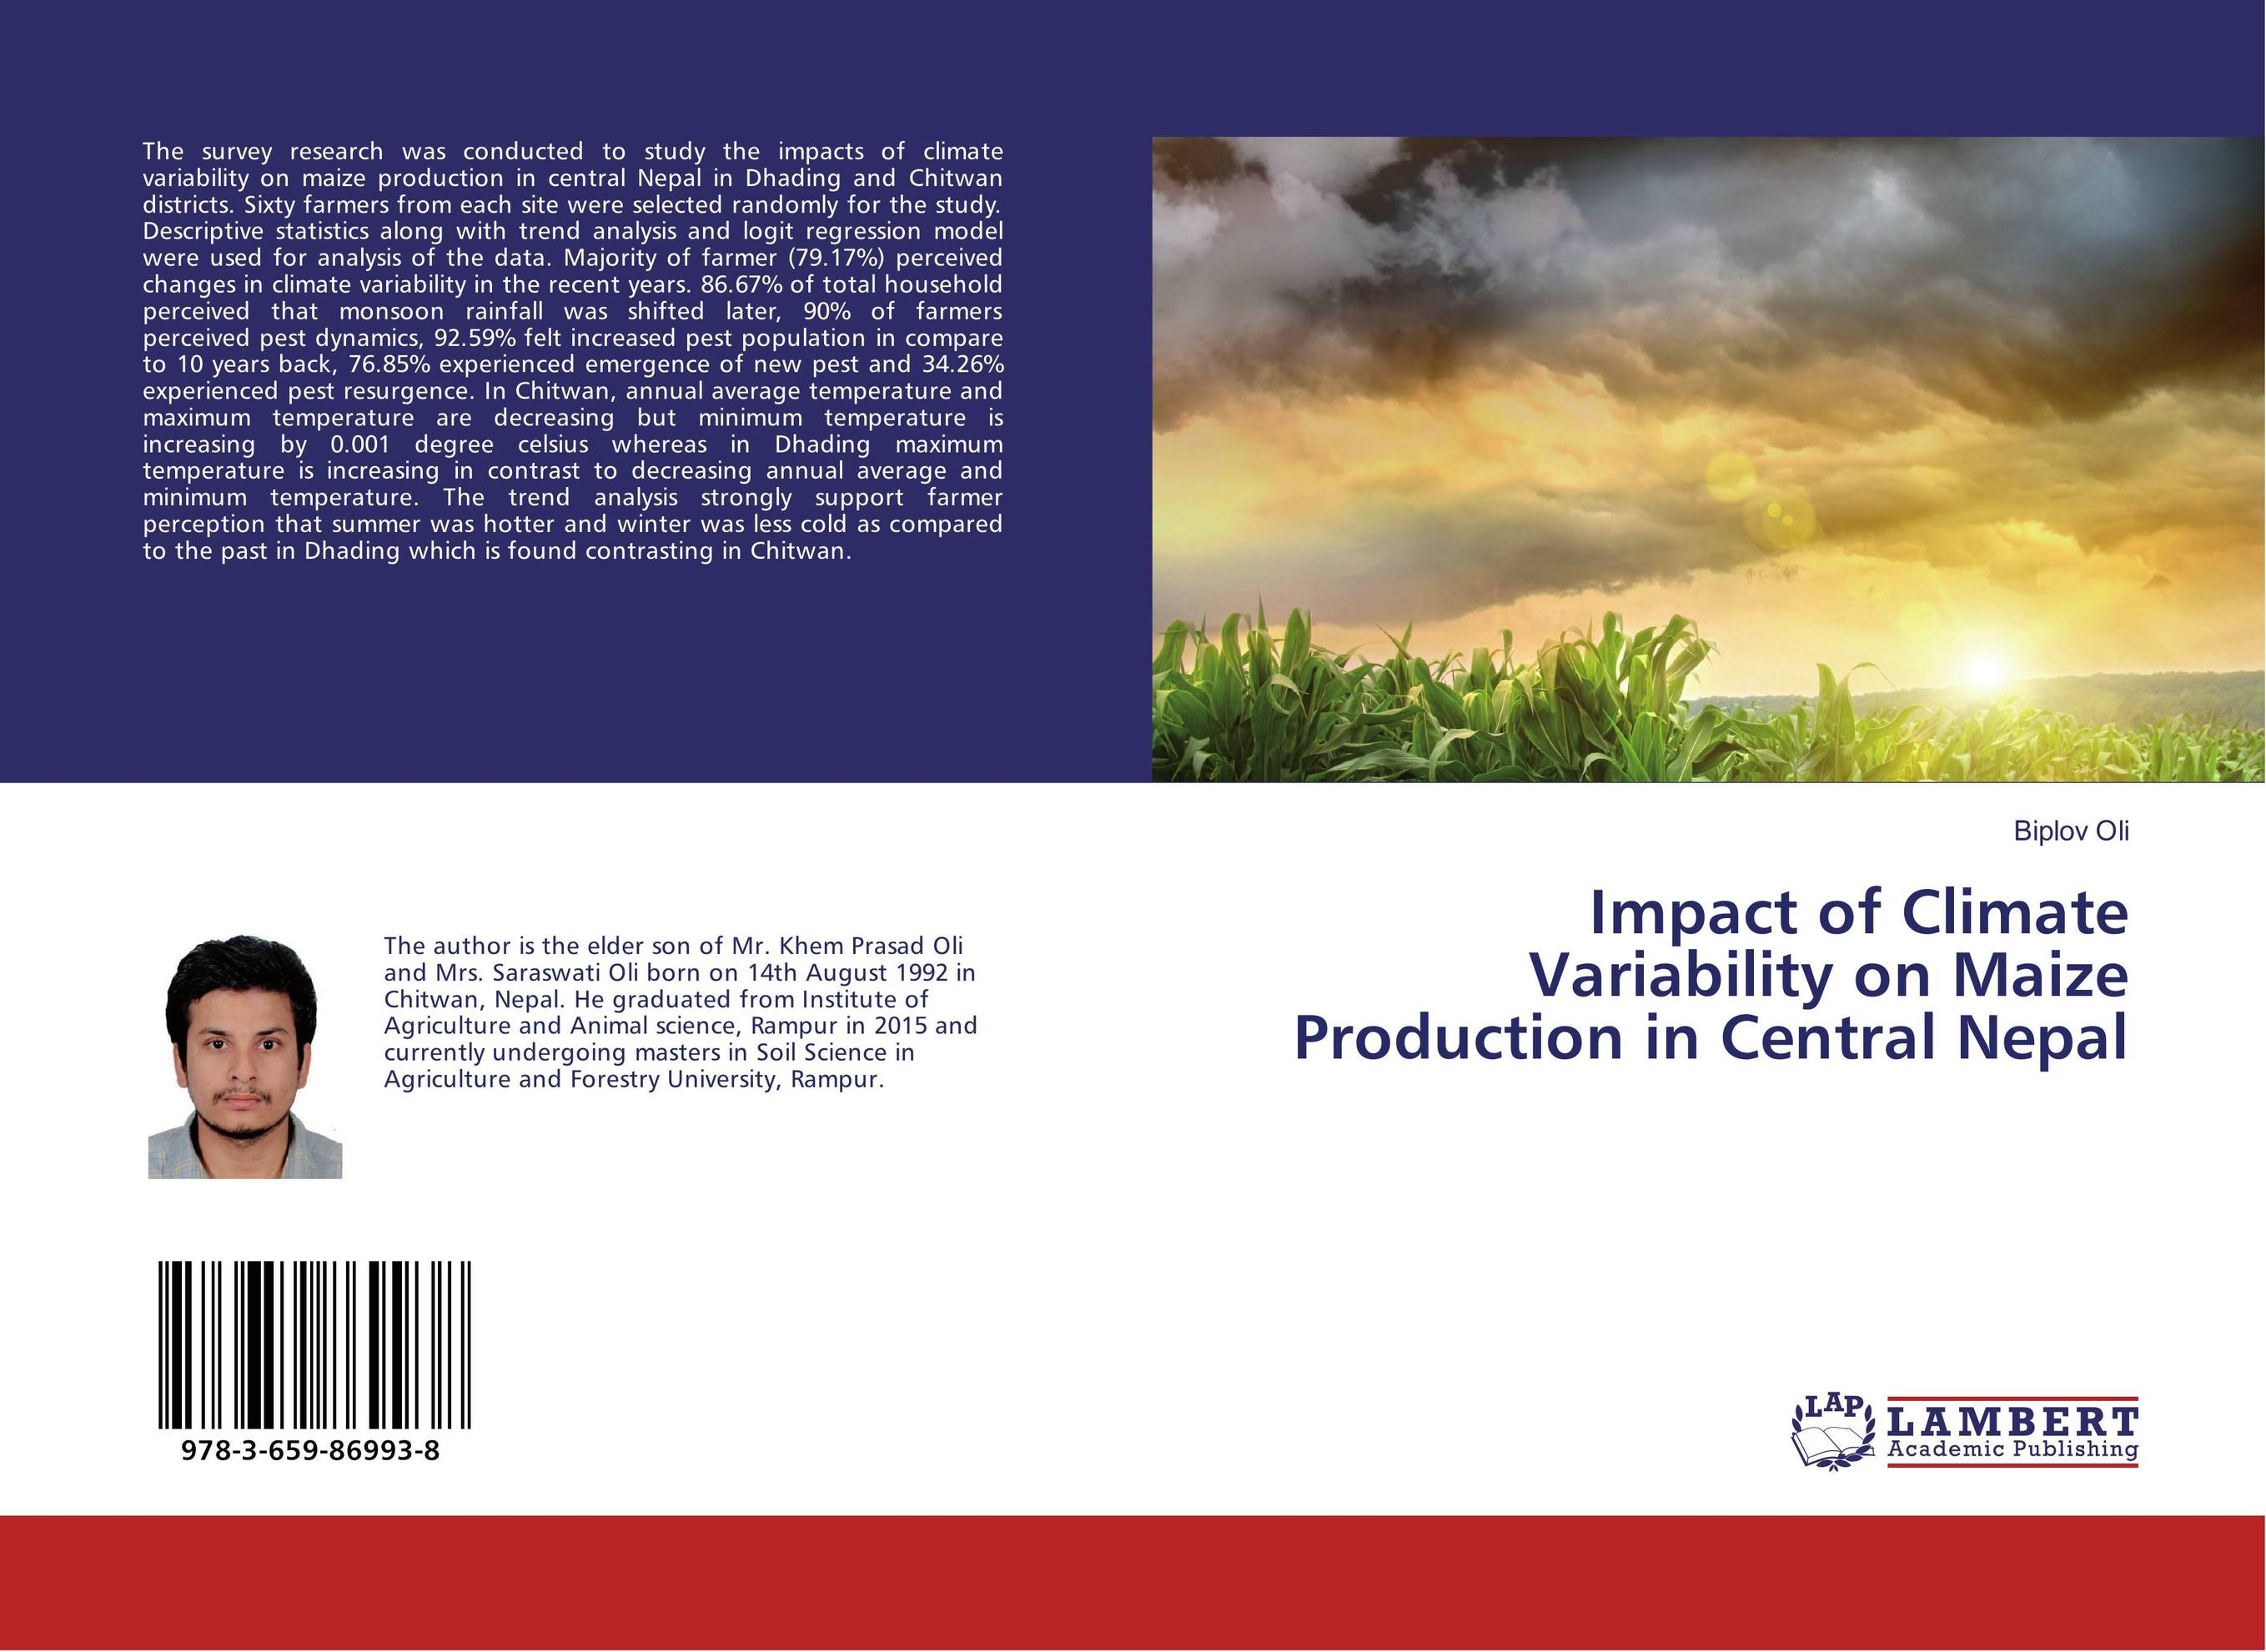 Impact of Climate Variability on Maize Production in Central Nepal suh jude abenwi the economic impact of climate variability